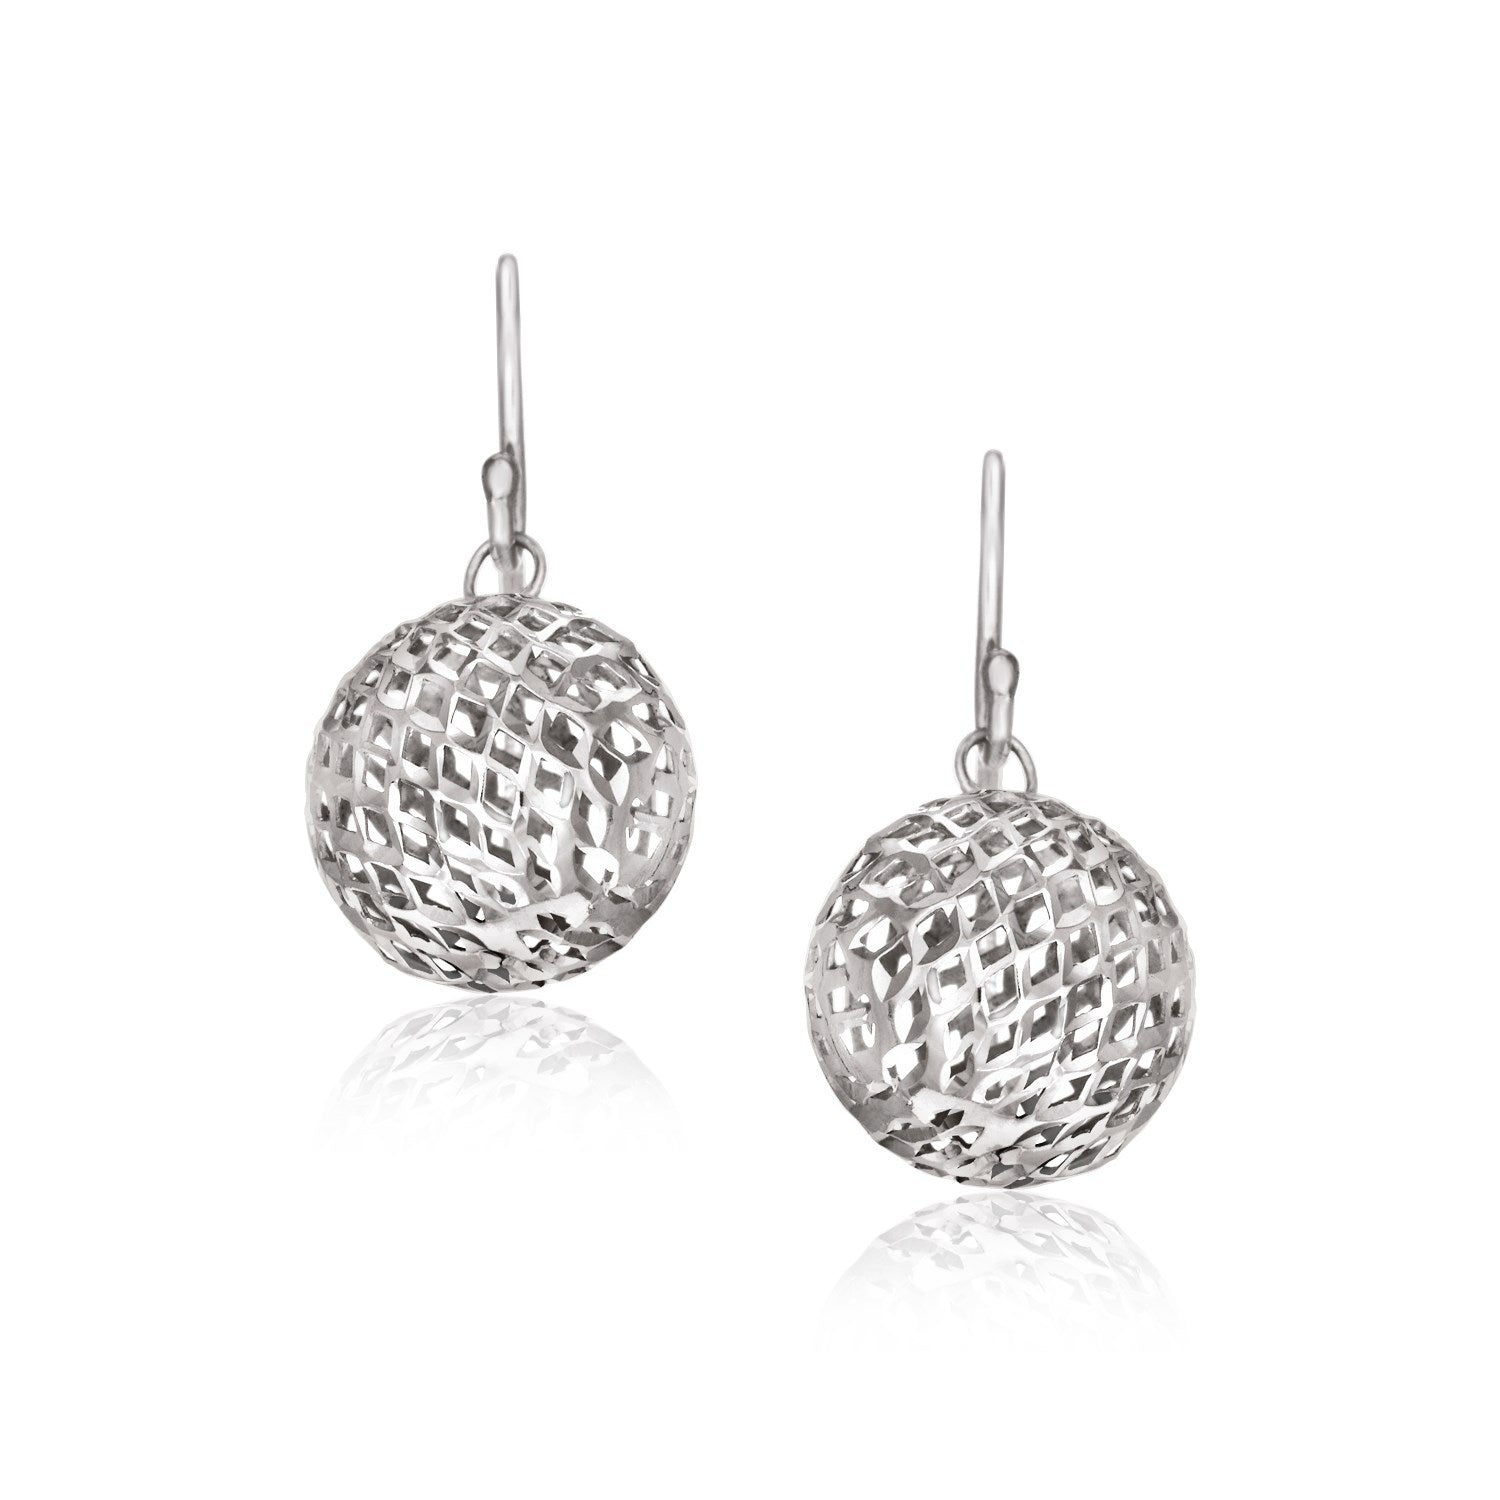 Sterling Silver Round Drop Earrings with Mesh Design